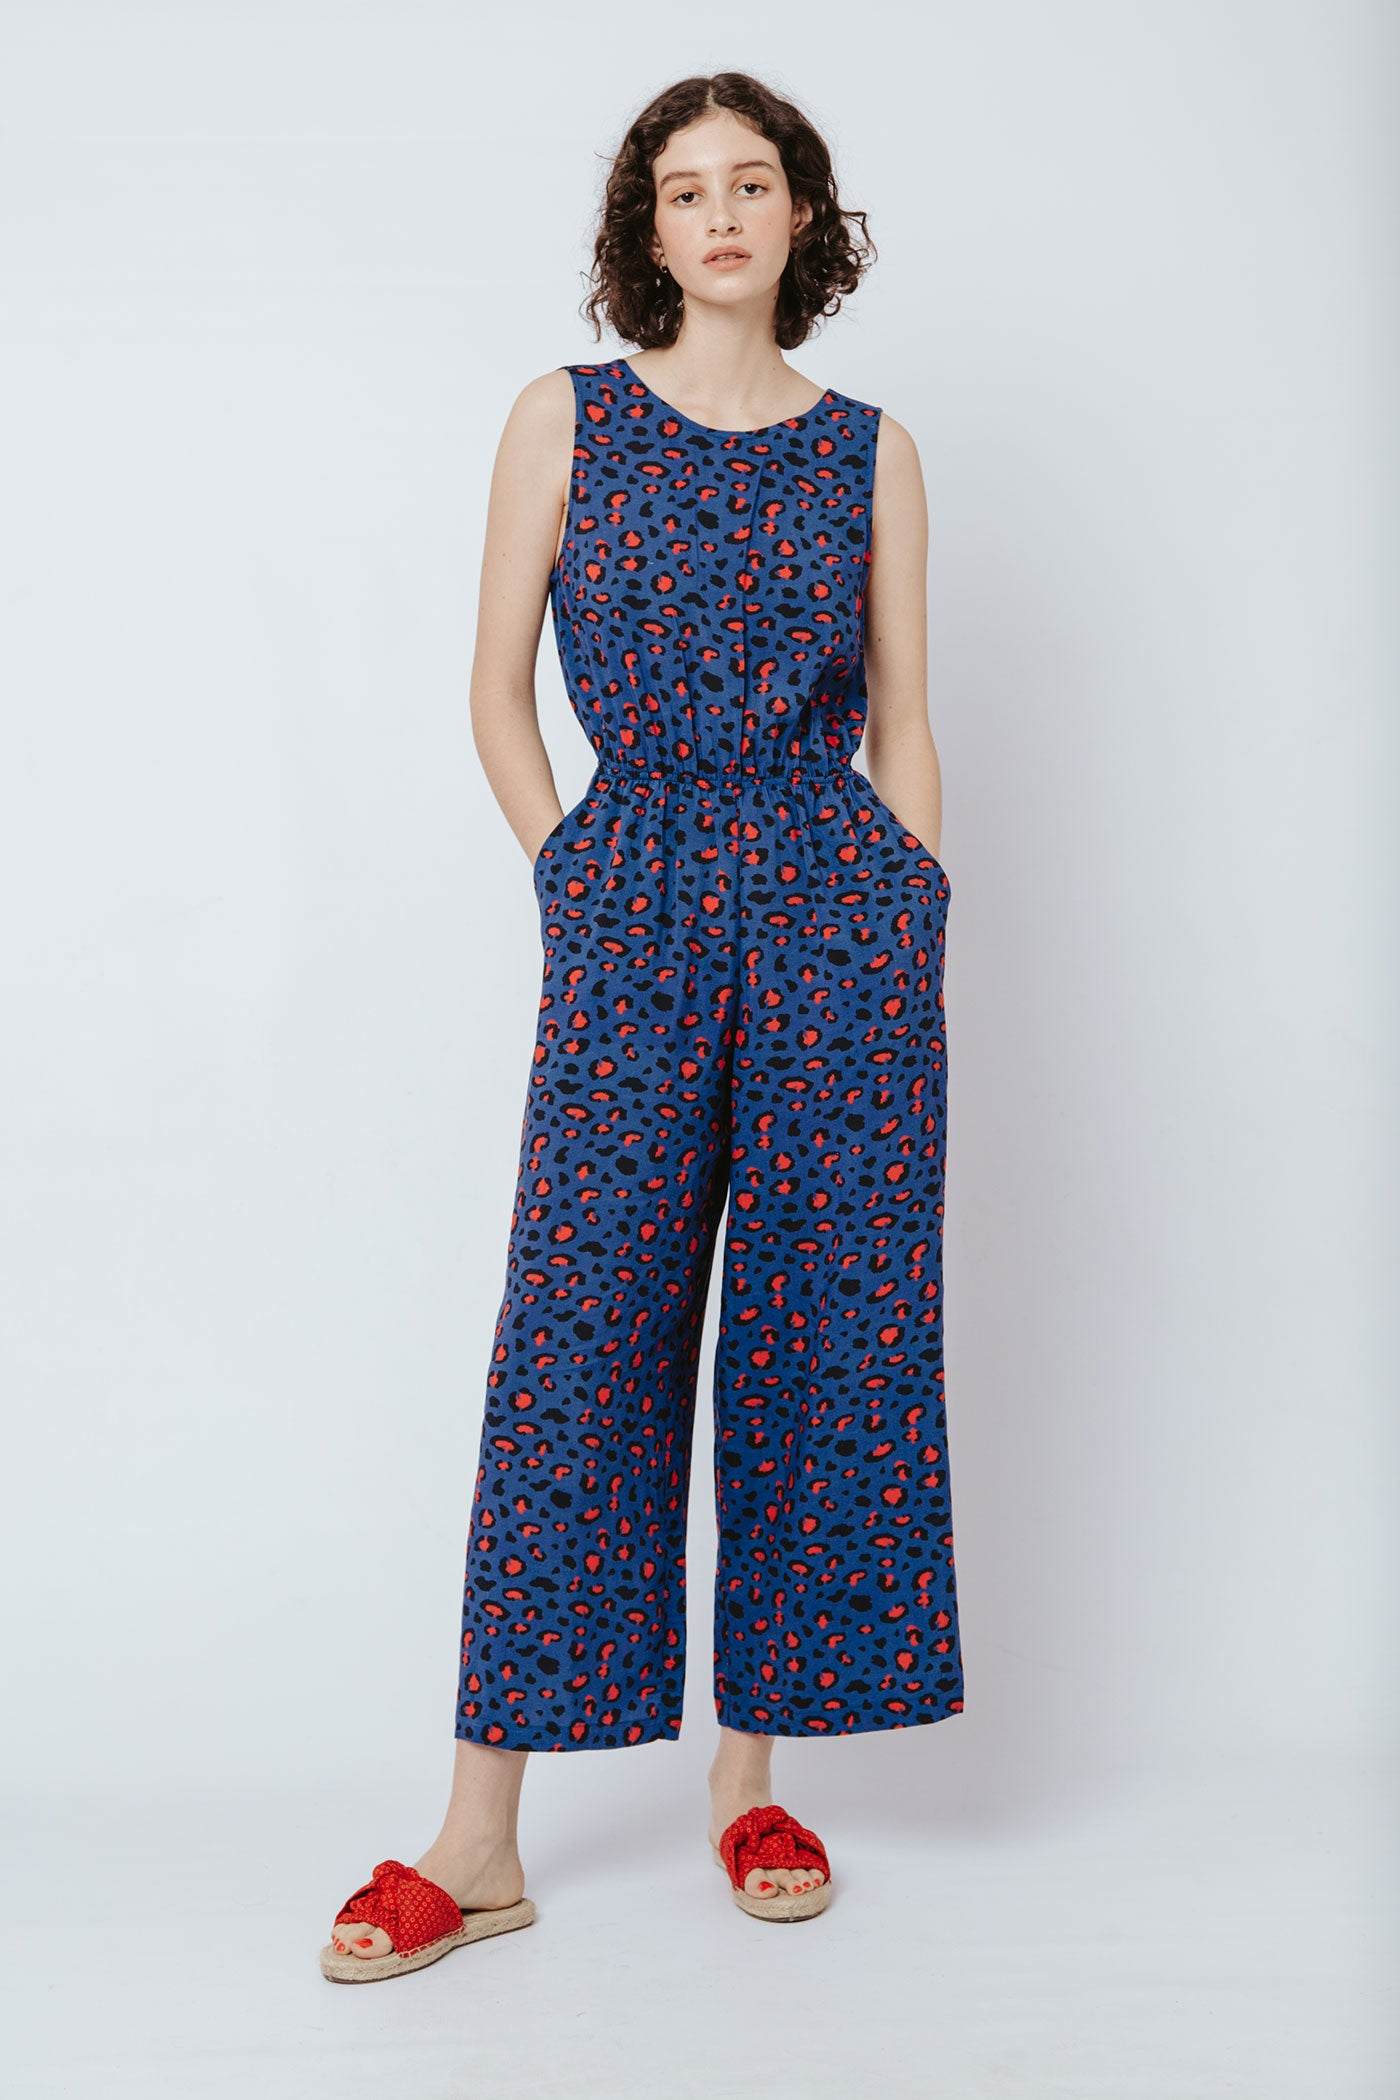 Toucan Jumpsuit - Royal Leopard